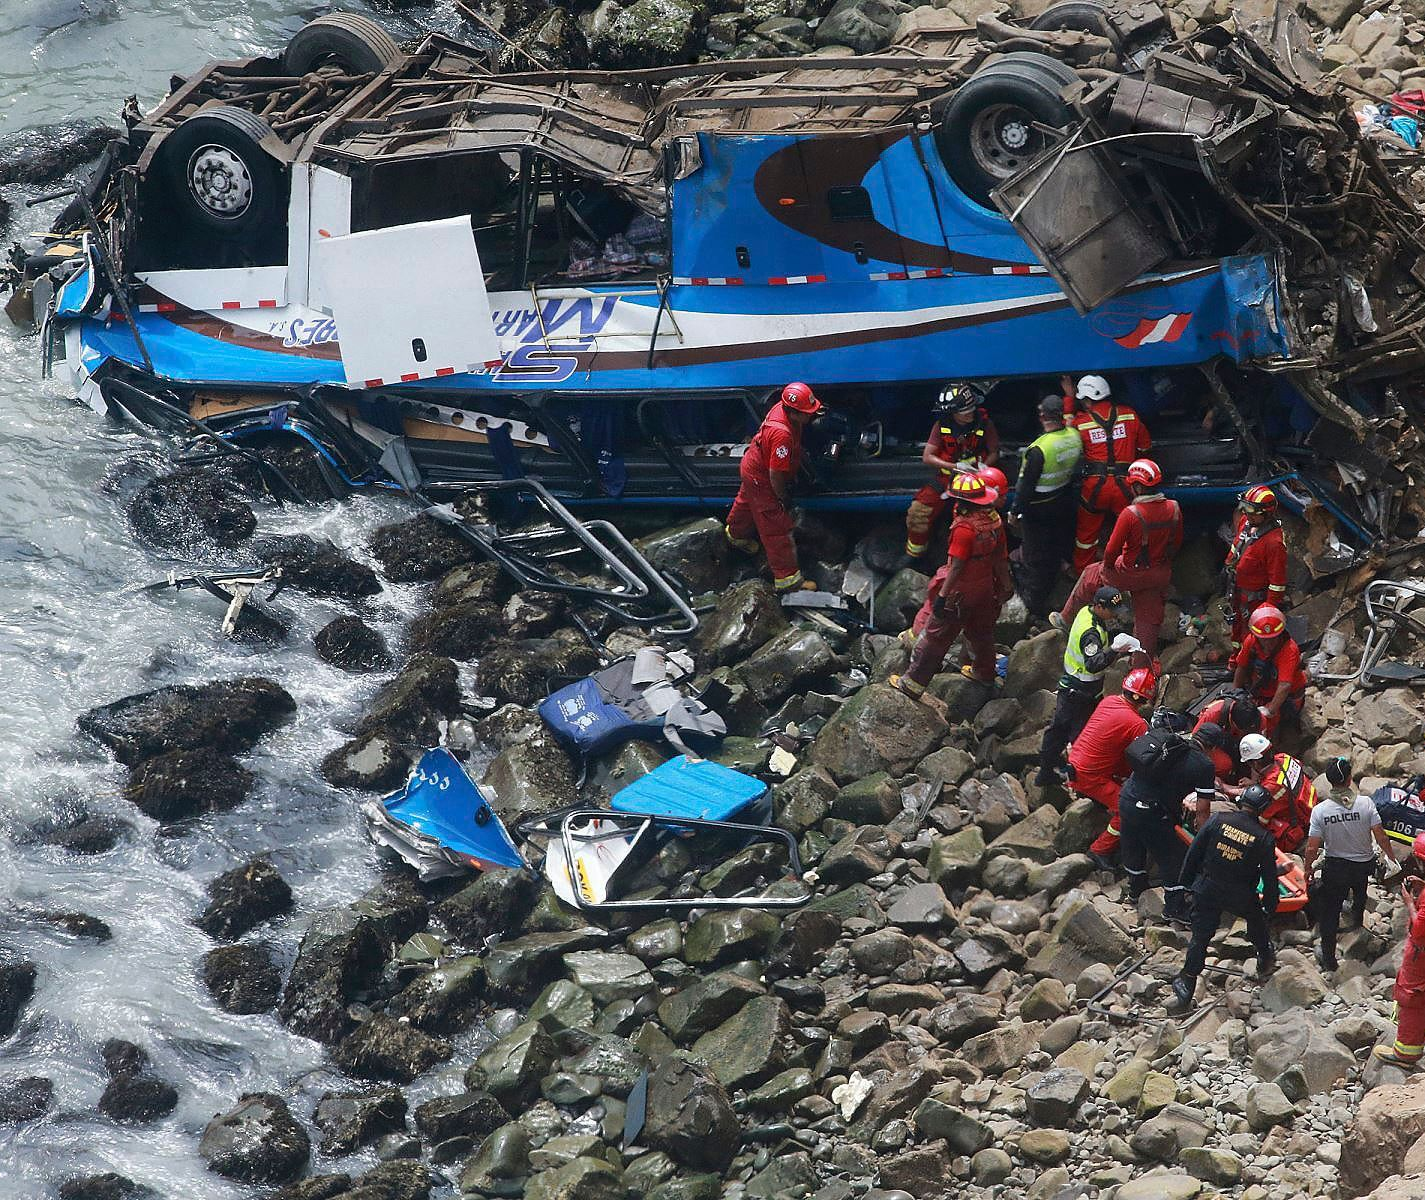 Peruvian rescue teams search for survivors of horrific bus crash on 'Devil's Curve'